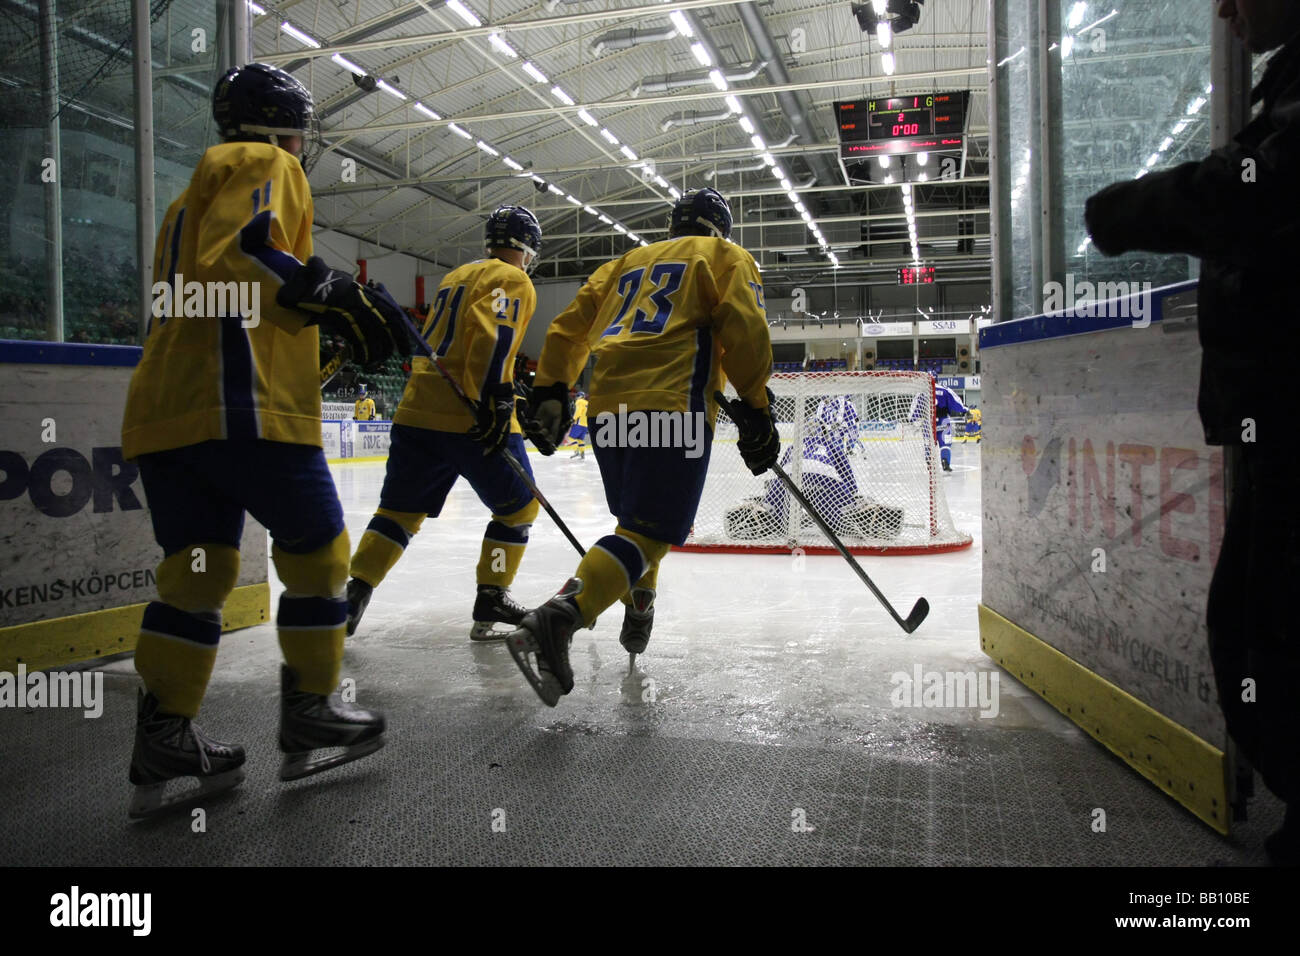 Swedish team entering the ice in a U18 ice-hockey tournament. - Stock Image